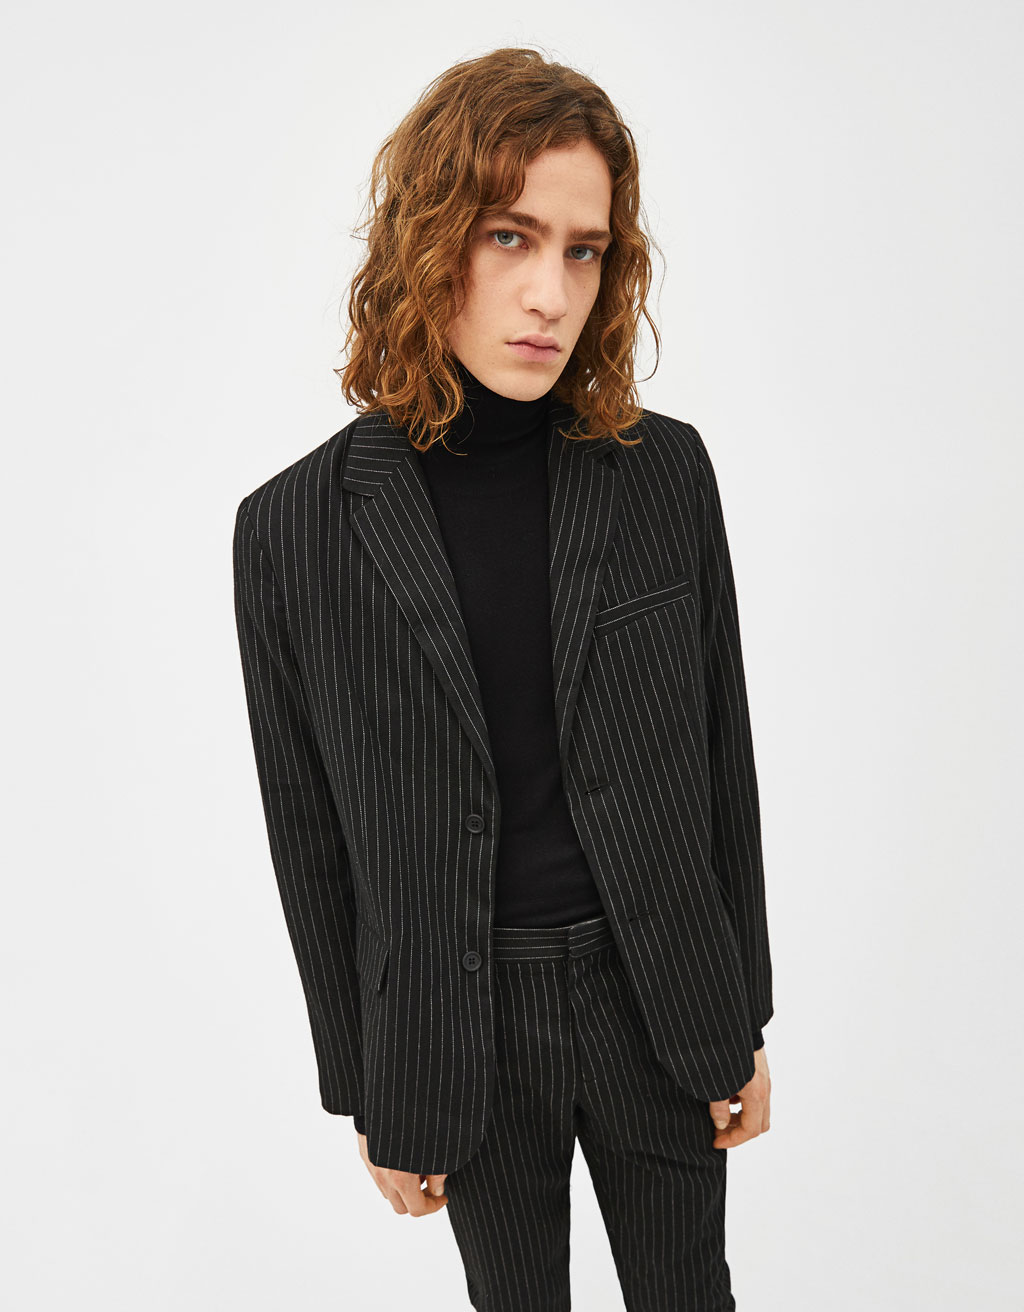 Blazer with pinstripe print